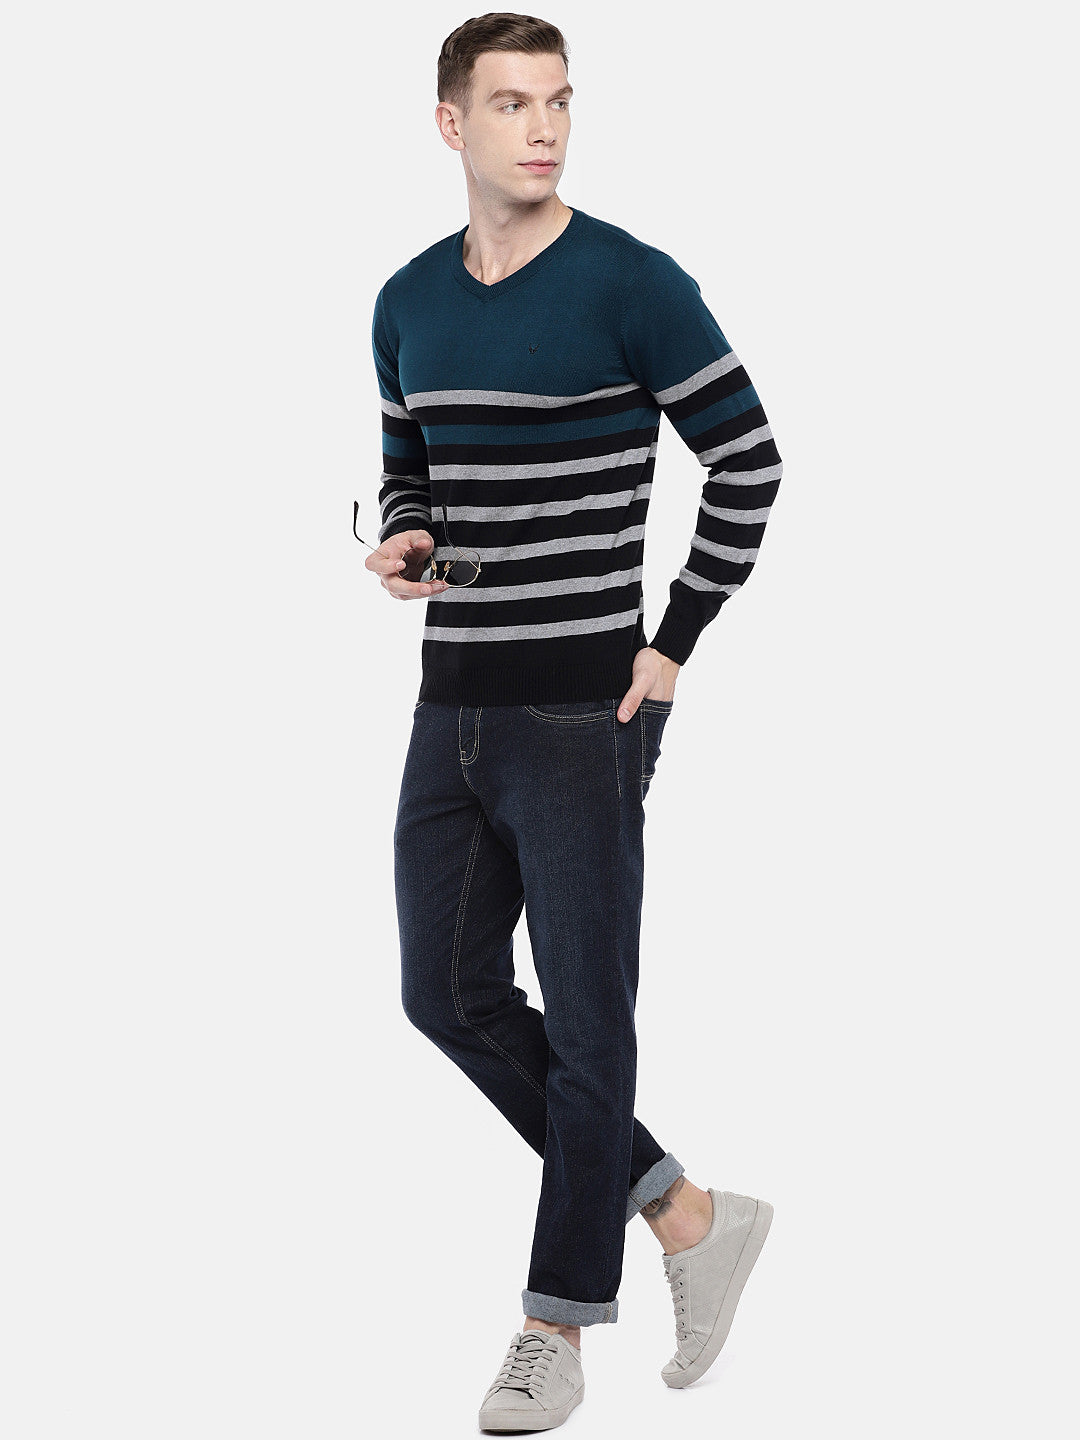 Green & Black Striped Sweater-4